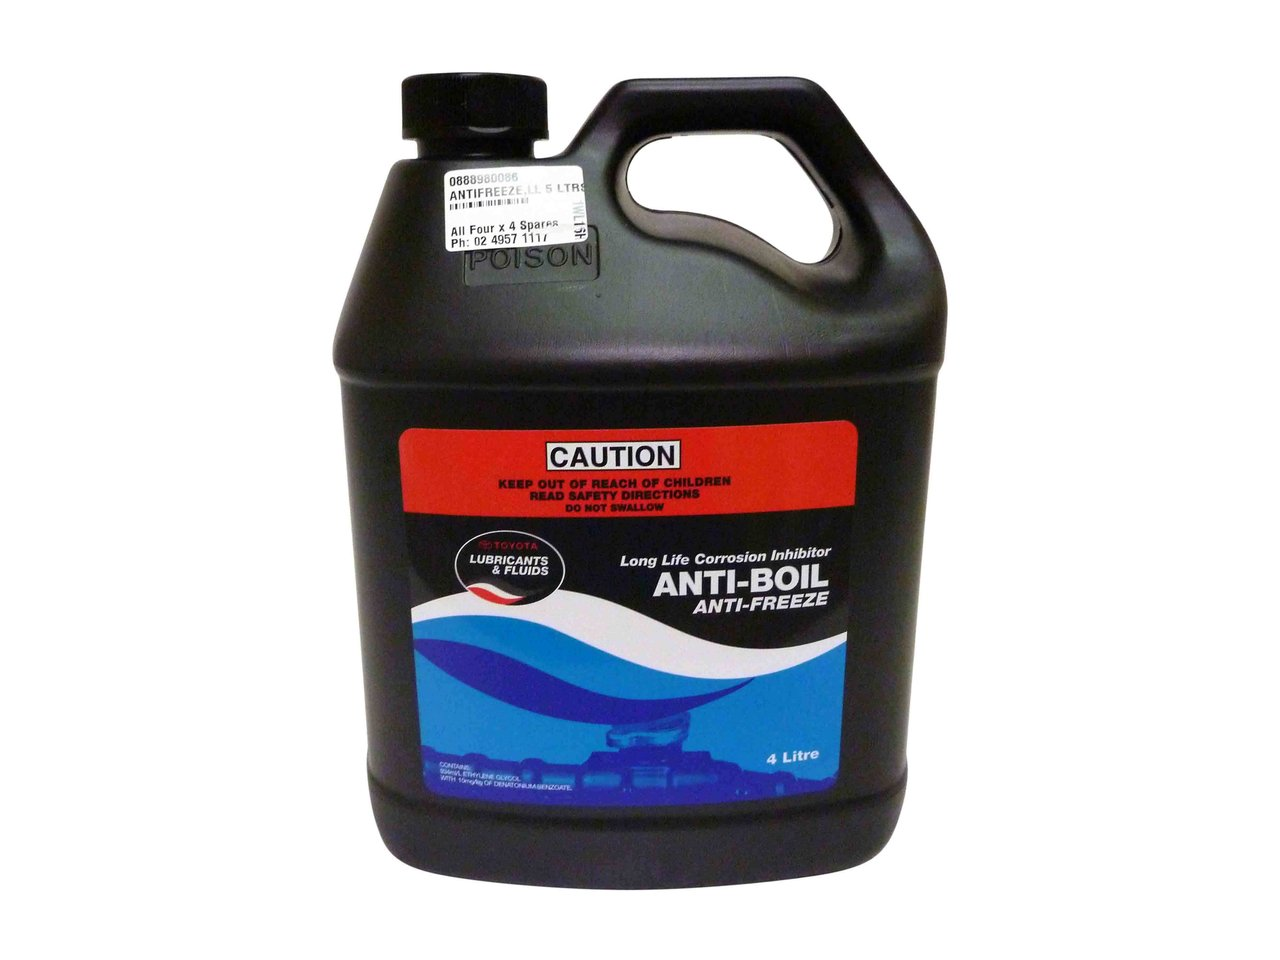 long life red coolant suitable for engines genuine rh allfourx4 com au toyota red coolant durability toyota red coolant life